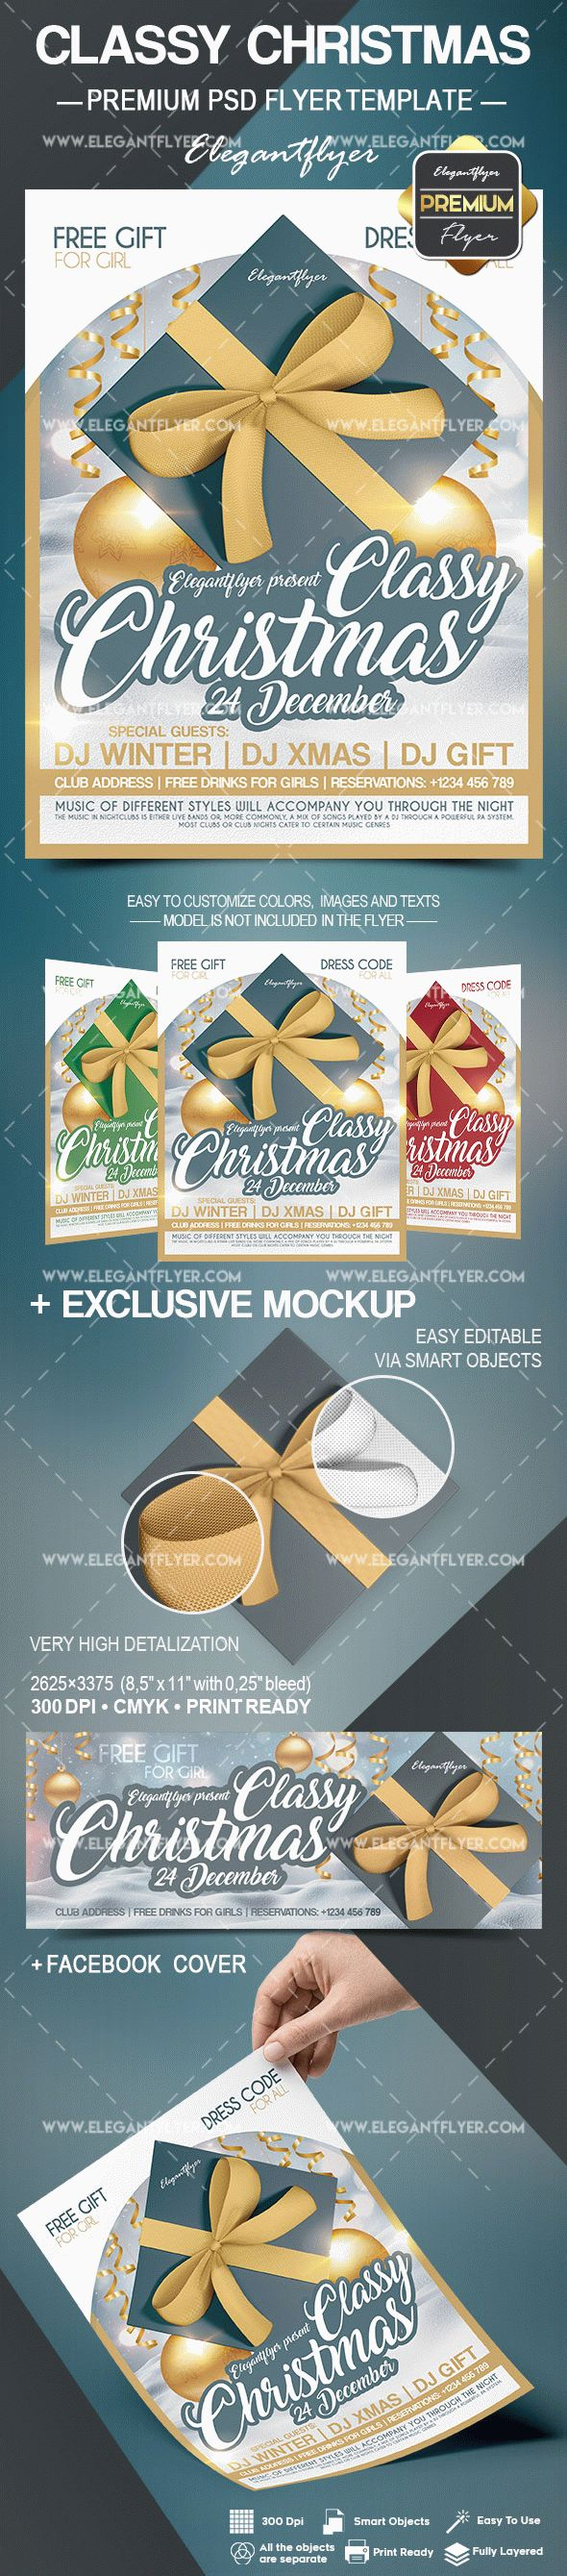 Classy Christmas – Flyer PSD Template + Facebook Cover